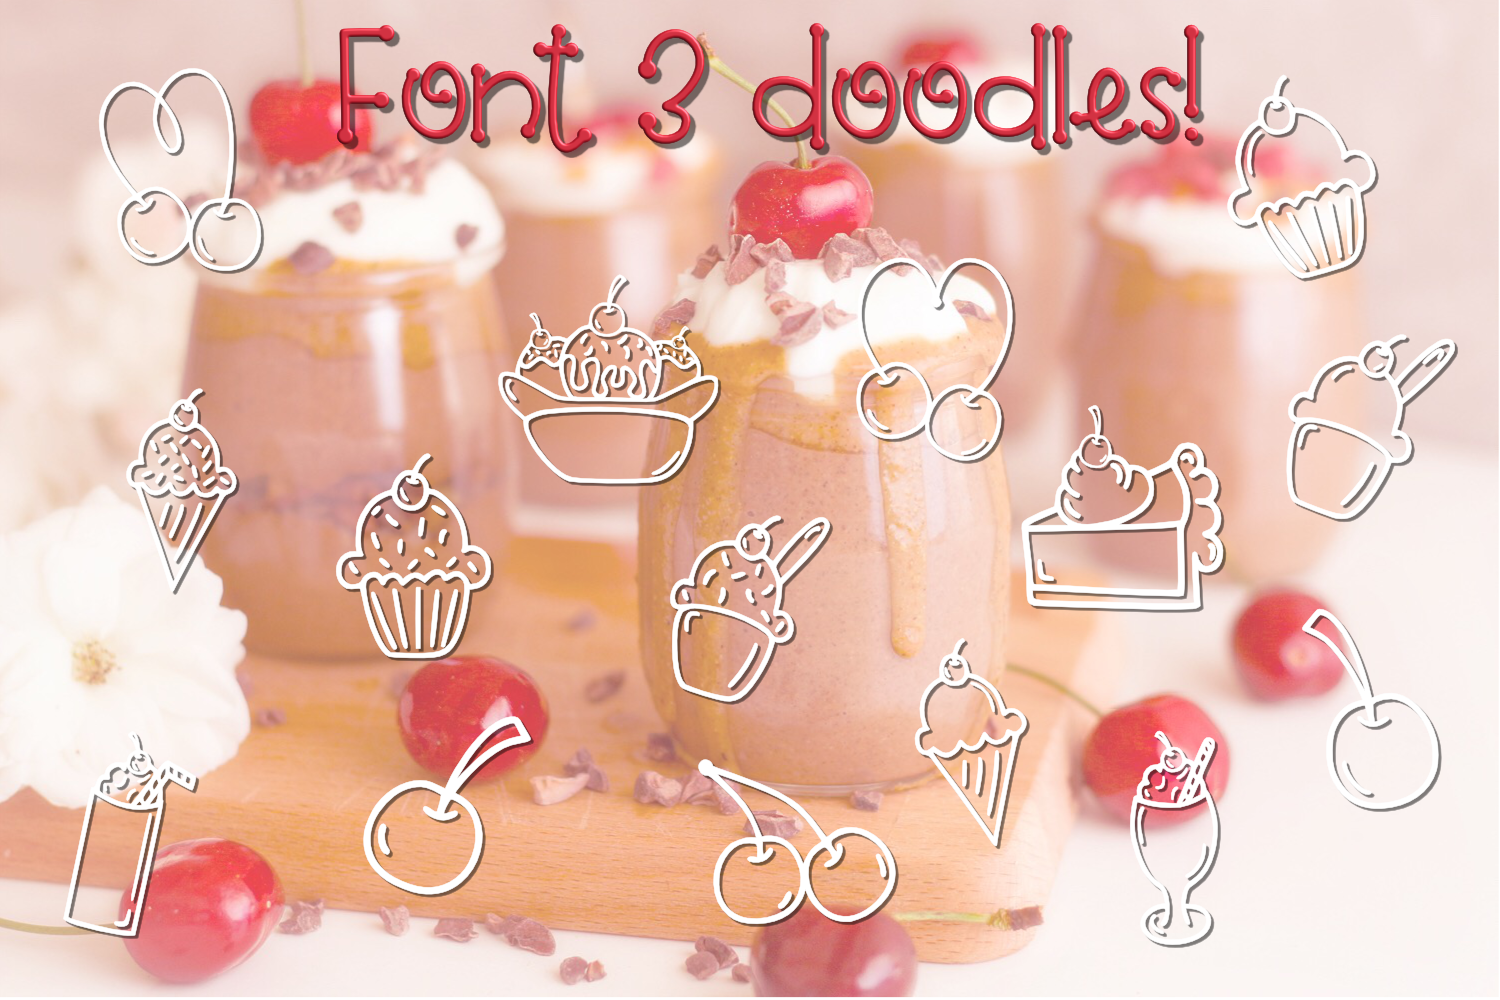 Cherry on Top - A Font Trio with Doodles example image 4